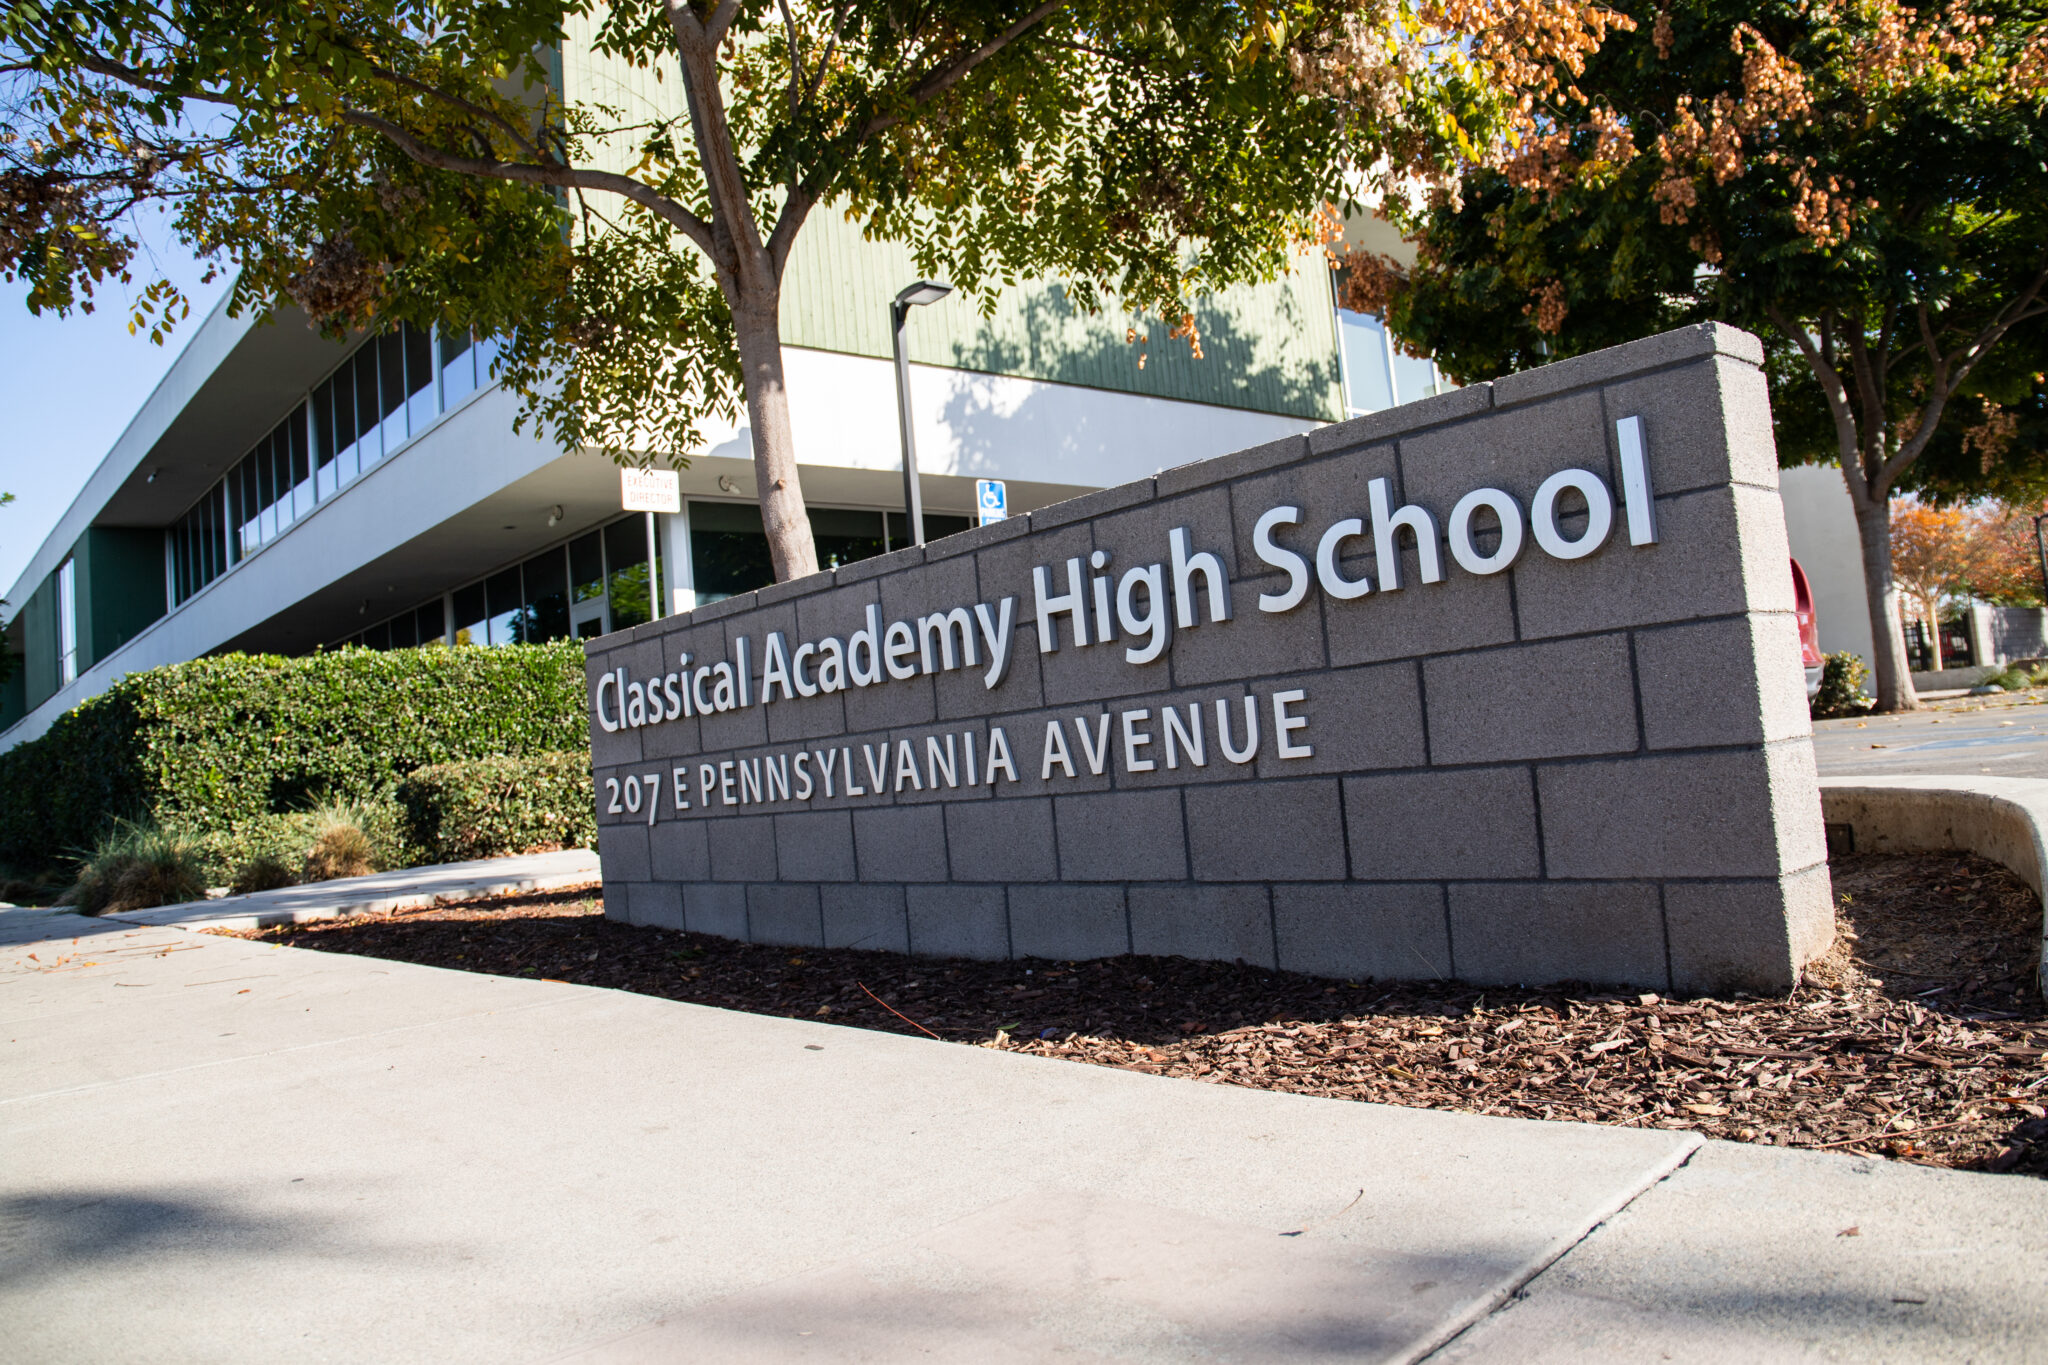 Classical-Academy_1-8-20-9-scaled-2 Morning Report: A Charter Walks Back Reopening Plans Featured Top Stories [your]NEWS